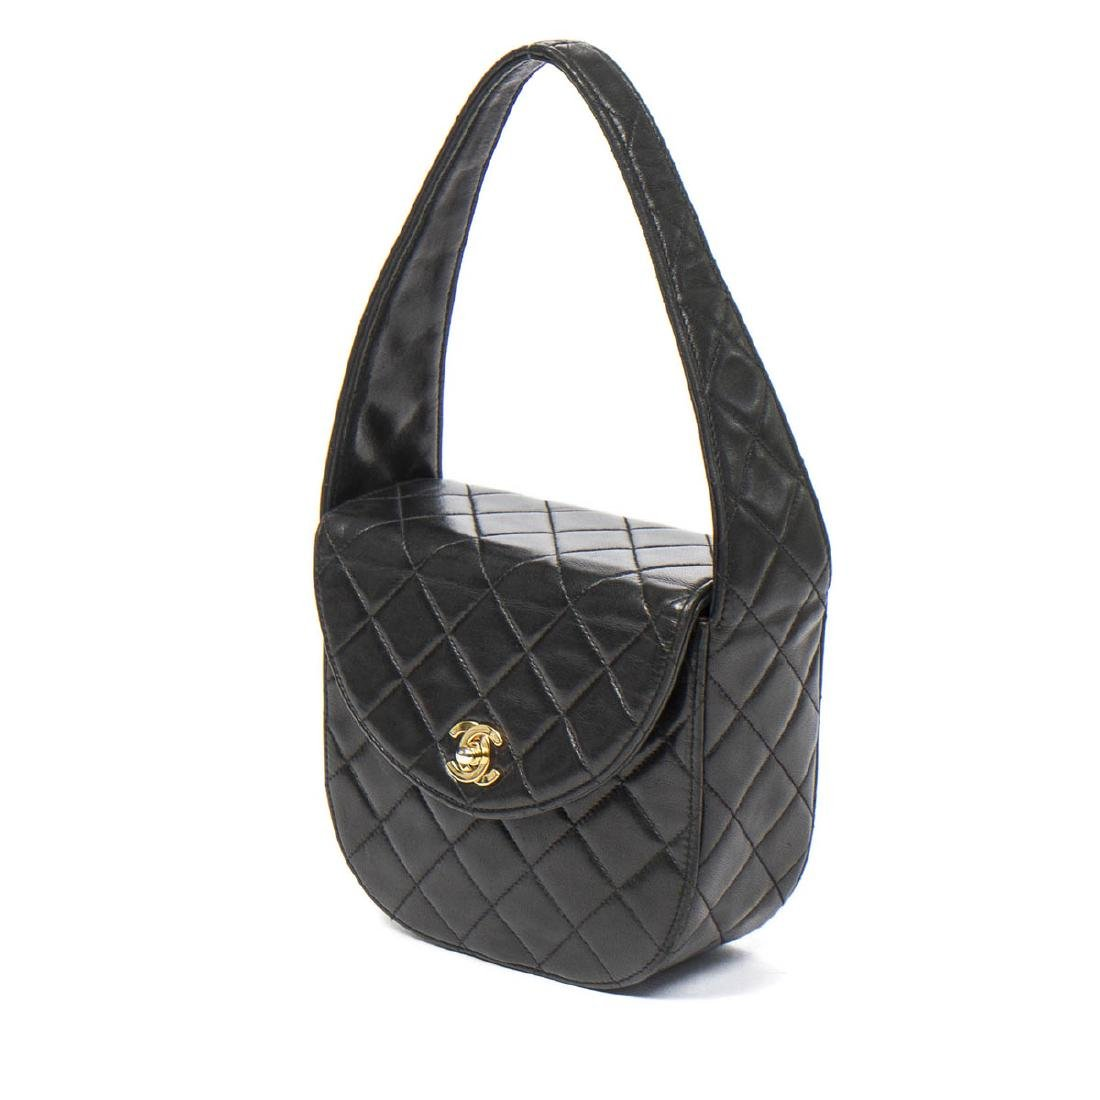 Chanel Make up Hand Bag in Black Quilted Leather - 2